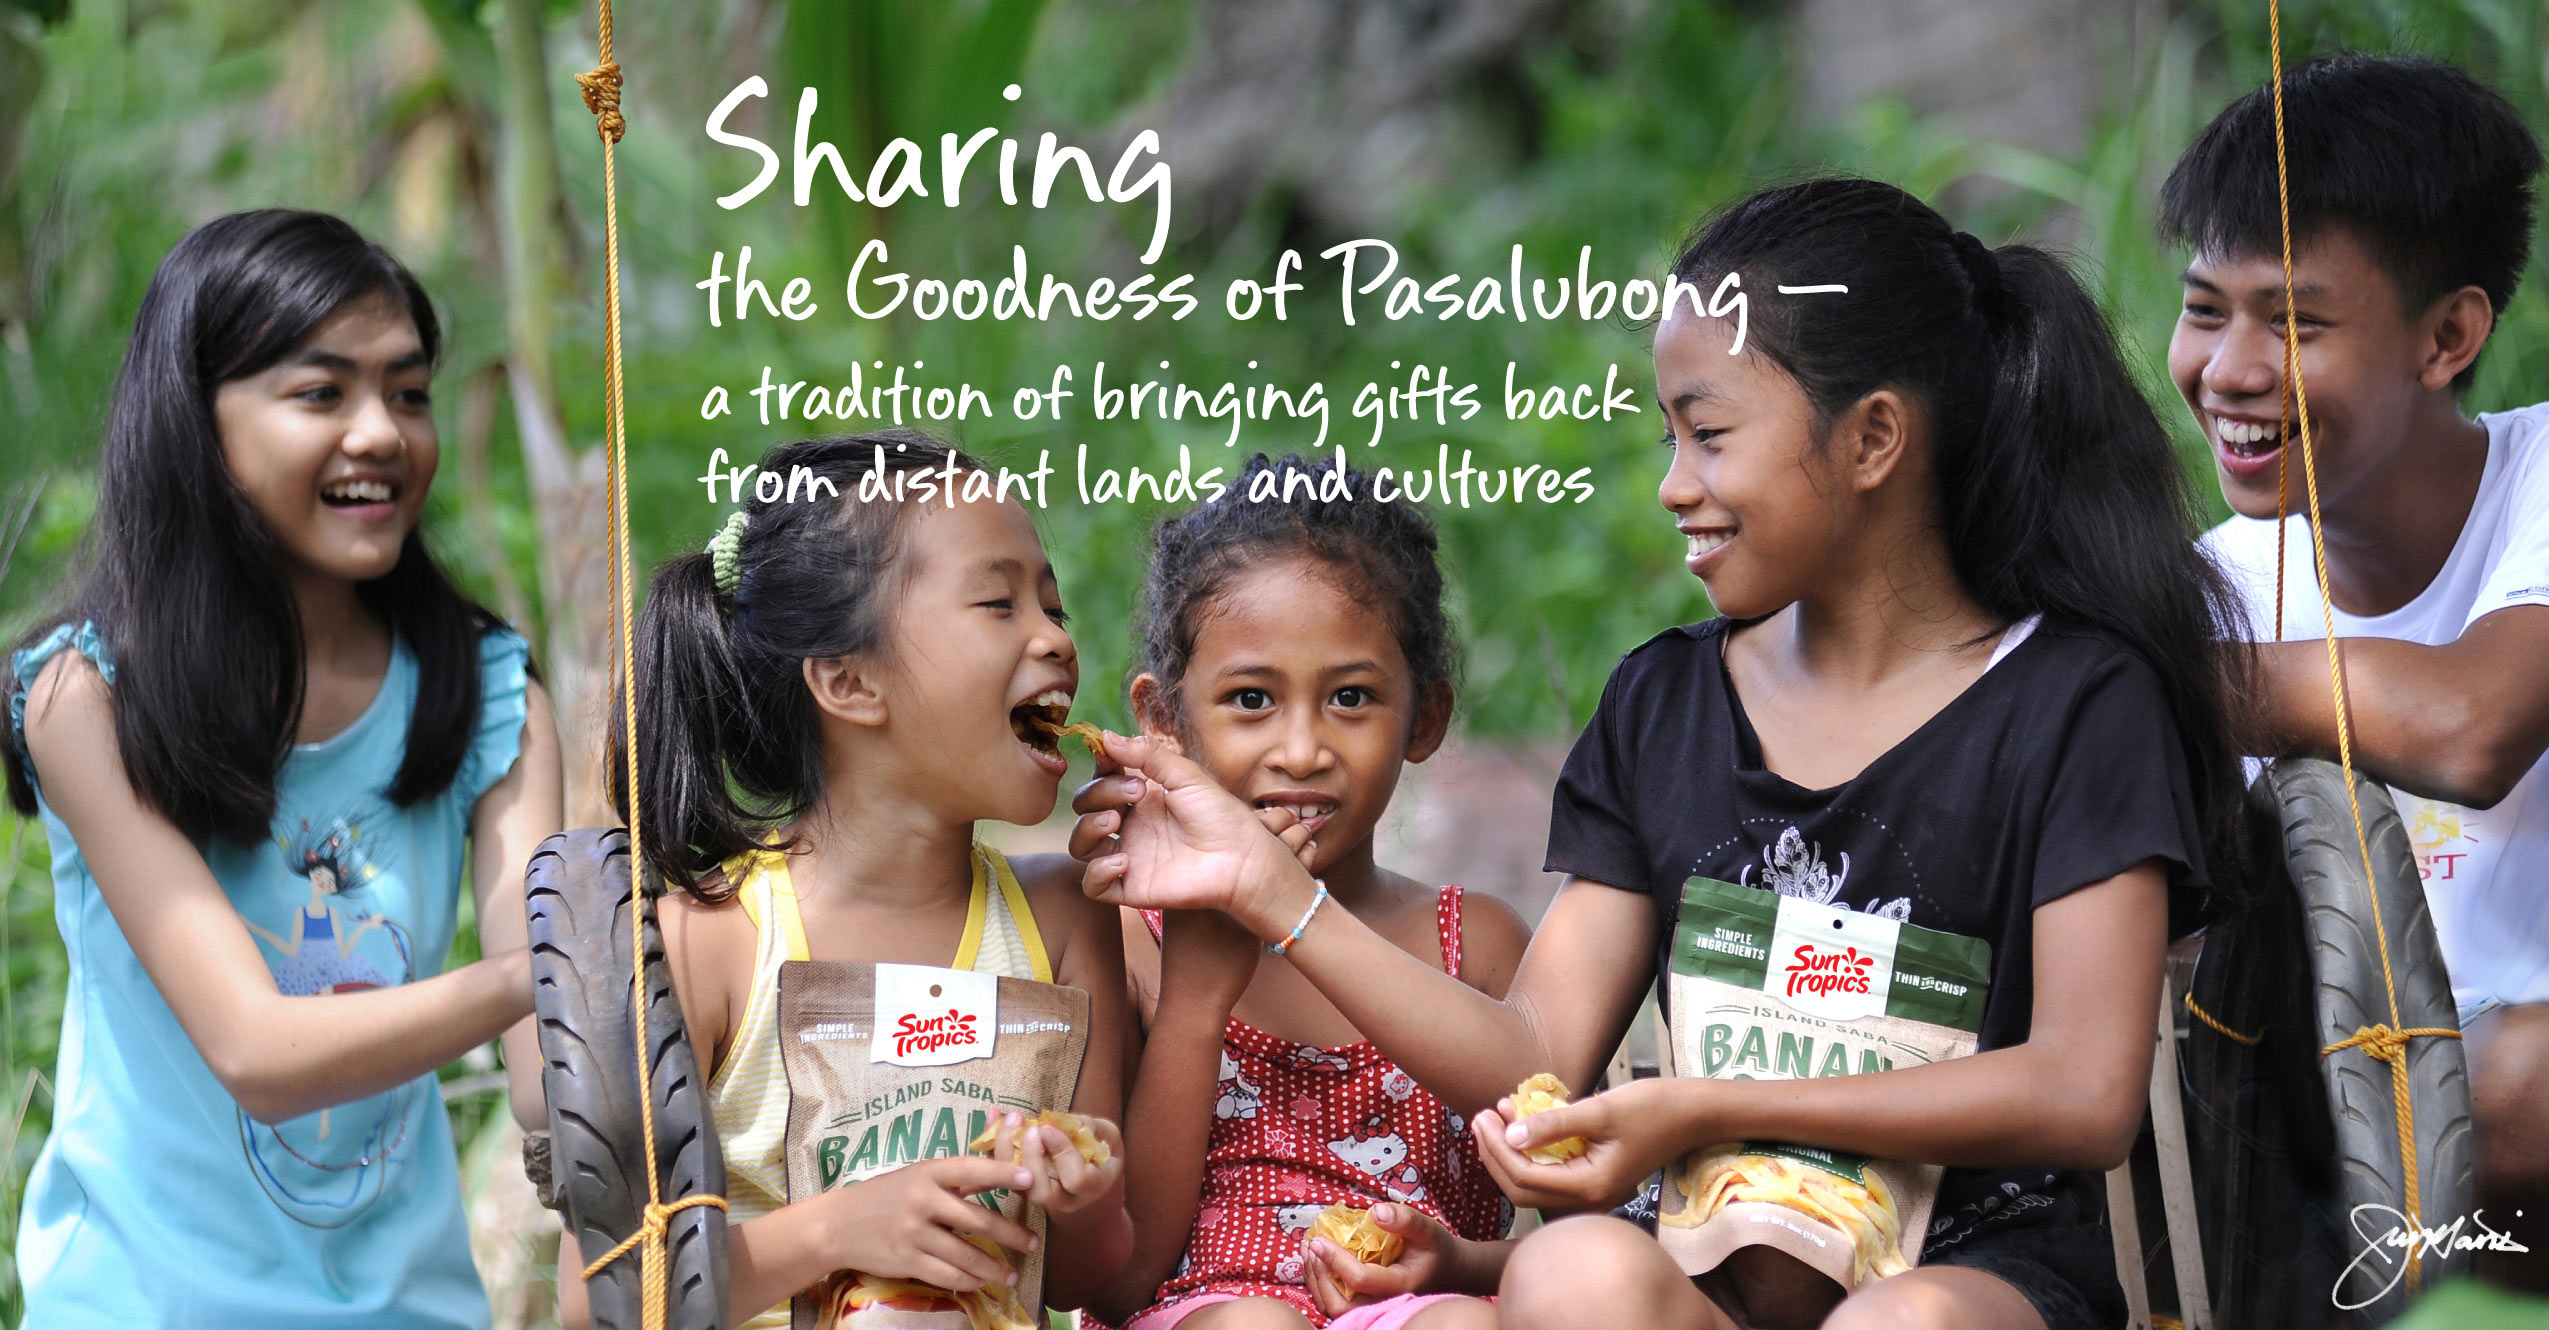 Sharing the goodness of Pasalubong